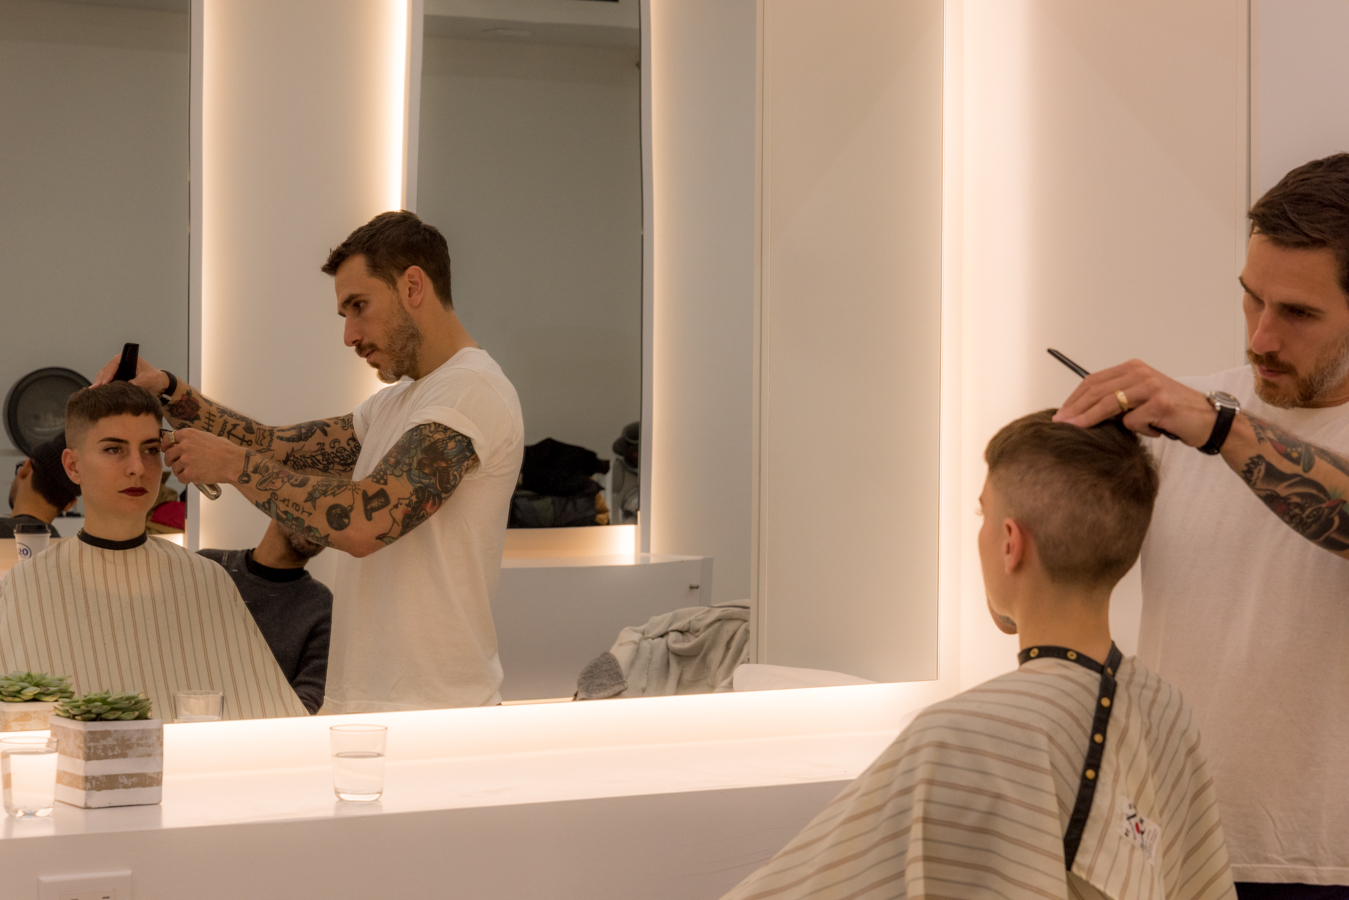 ROCK MAMA NYC LIFESTYLE BLOG-  HAIR STYLIST CONTINUING EDUCATION WITH ROB MCMILLEN FROM BLIND BARBER SHOP